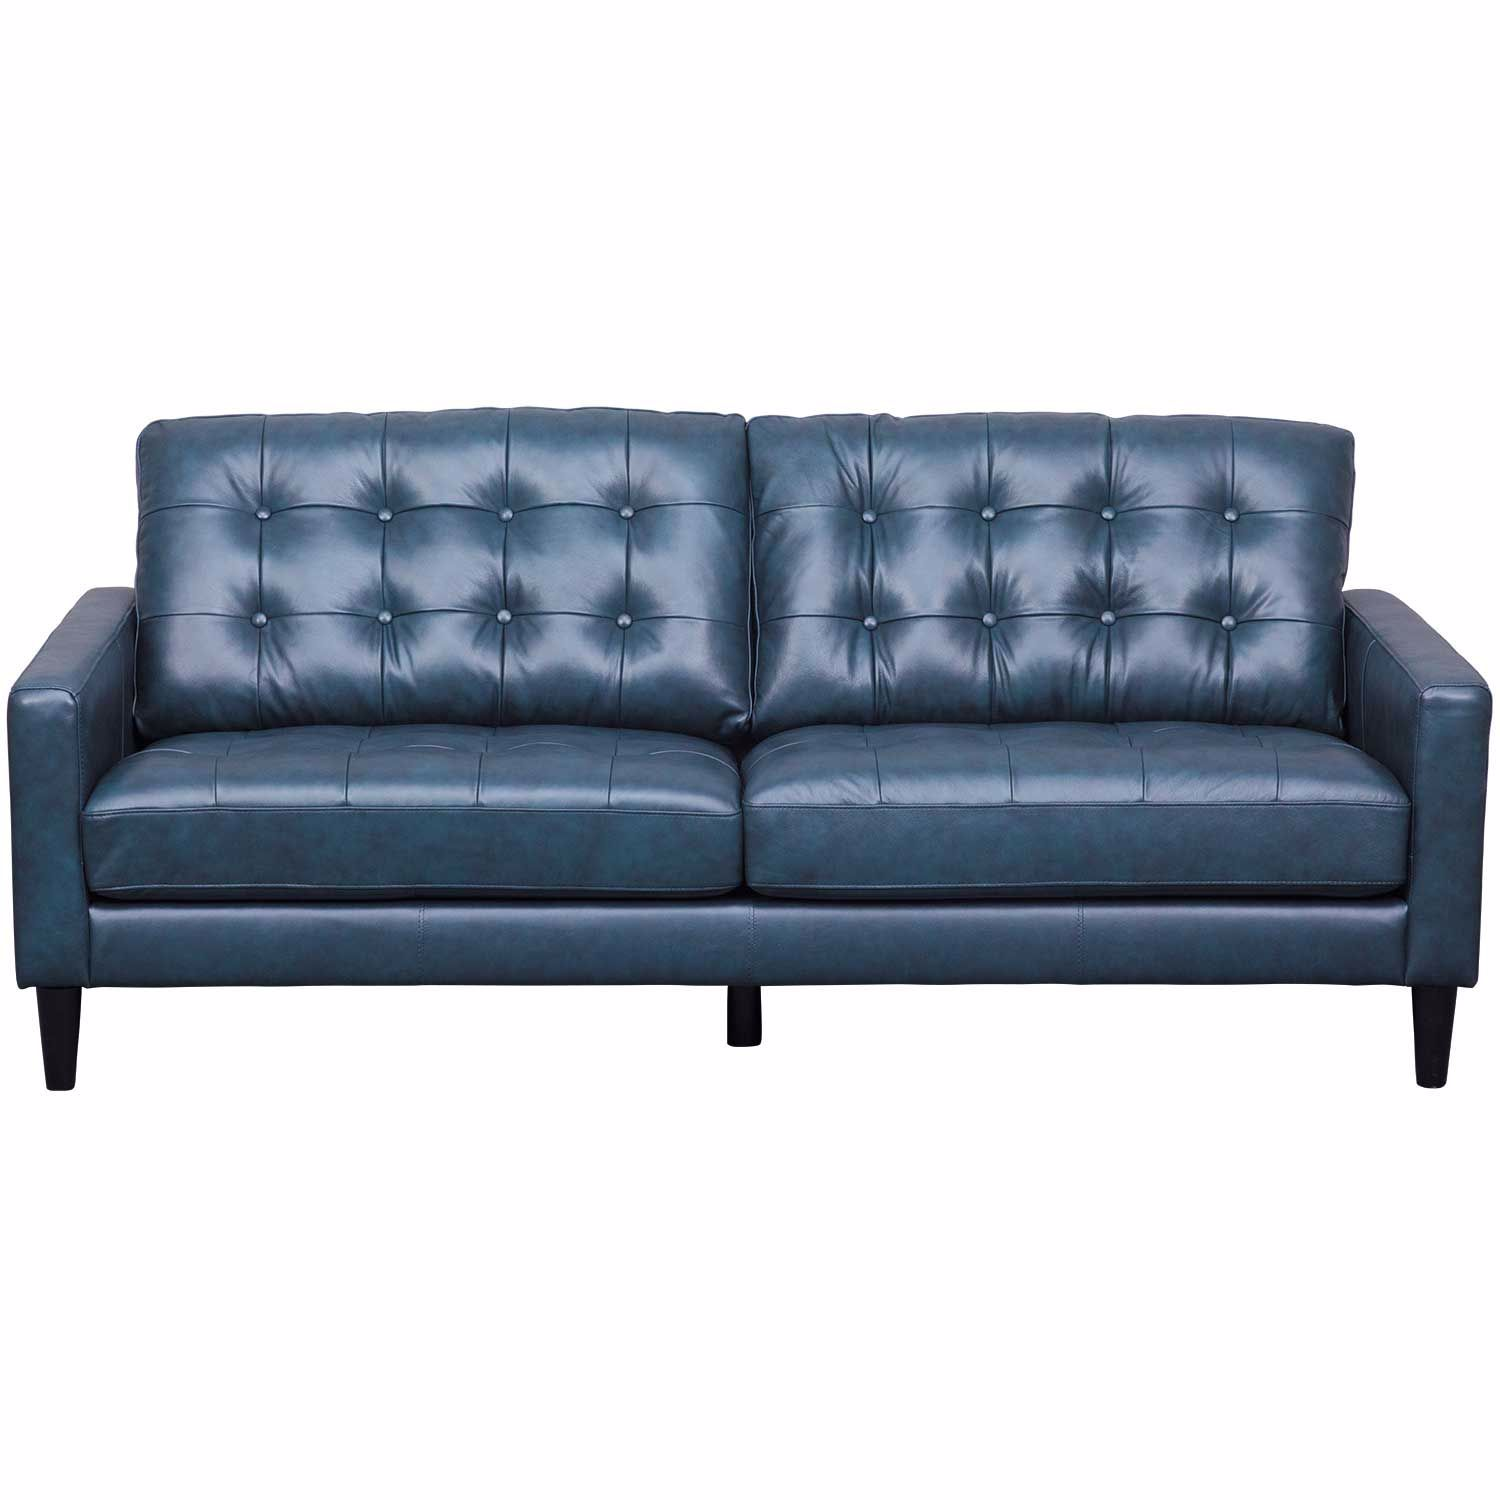 Ashton Navy Leather Sofa As 5957br